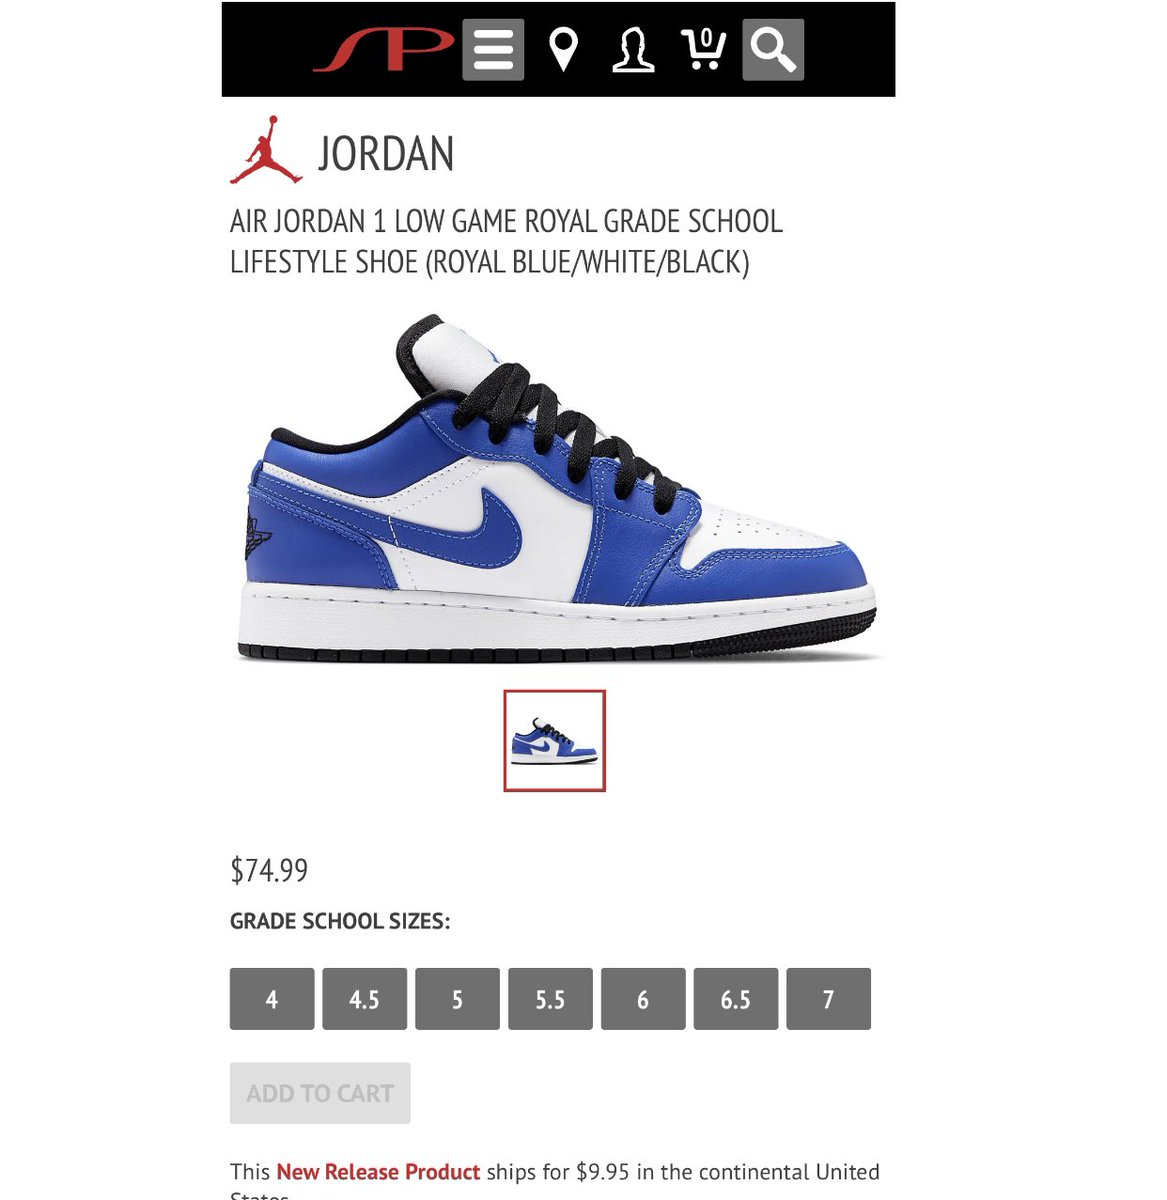 Snkr Twitr On Twitter Restock Gs Jordan 1 Low Game Royal Https T Co Drwwb5ok0e Ad